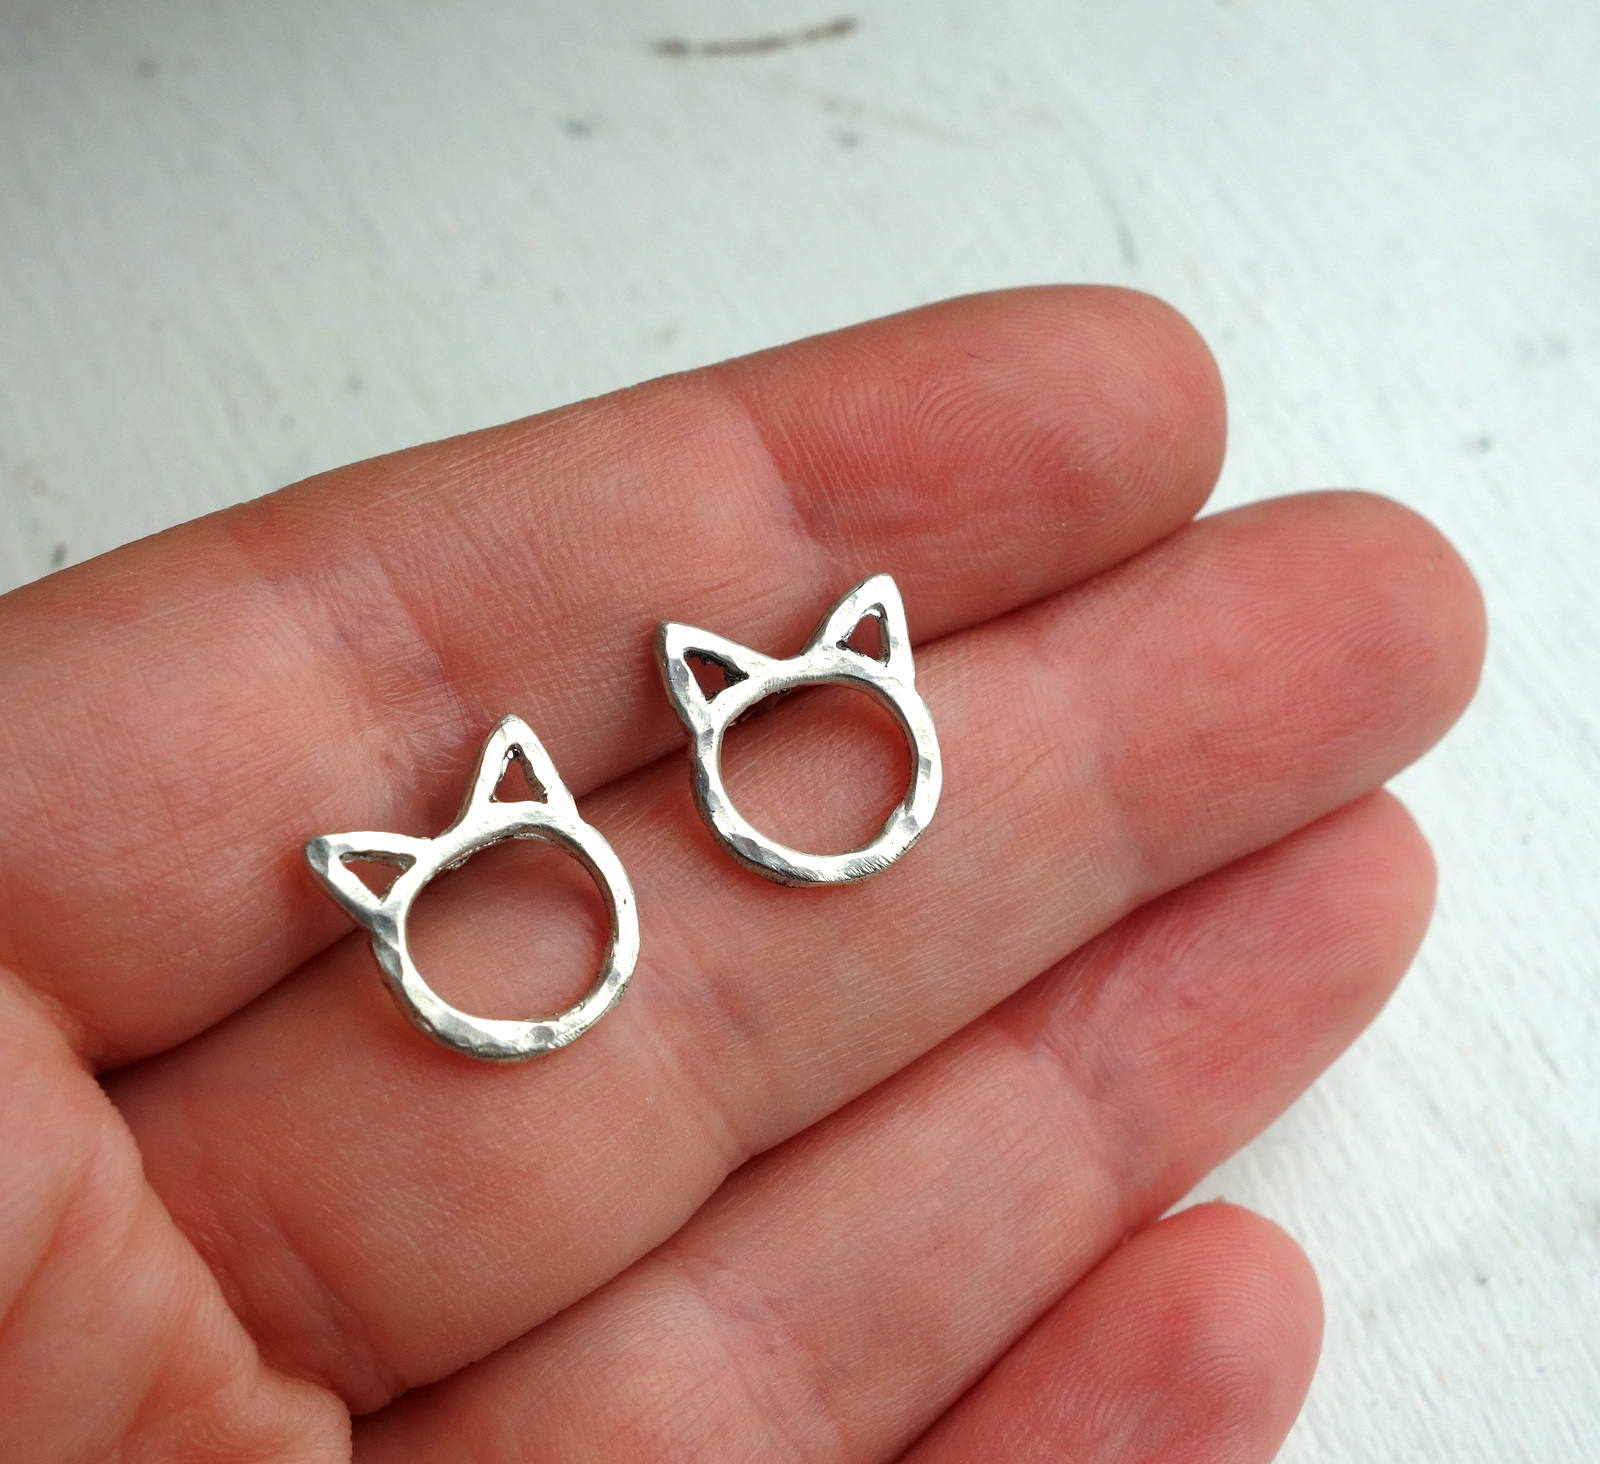 Tiny Cat Studs in Sterling or 14k Gold - Minimalist Cat Earrings Kittens Cat Lady Studs